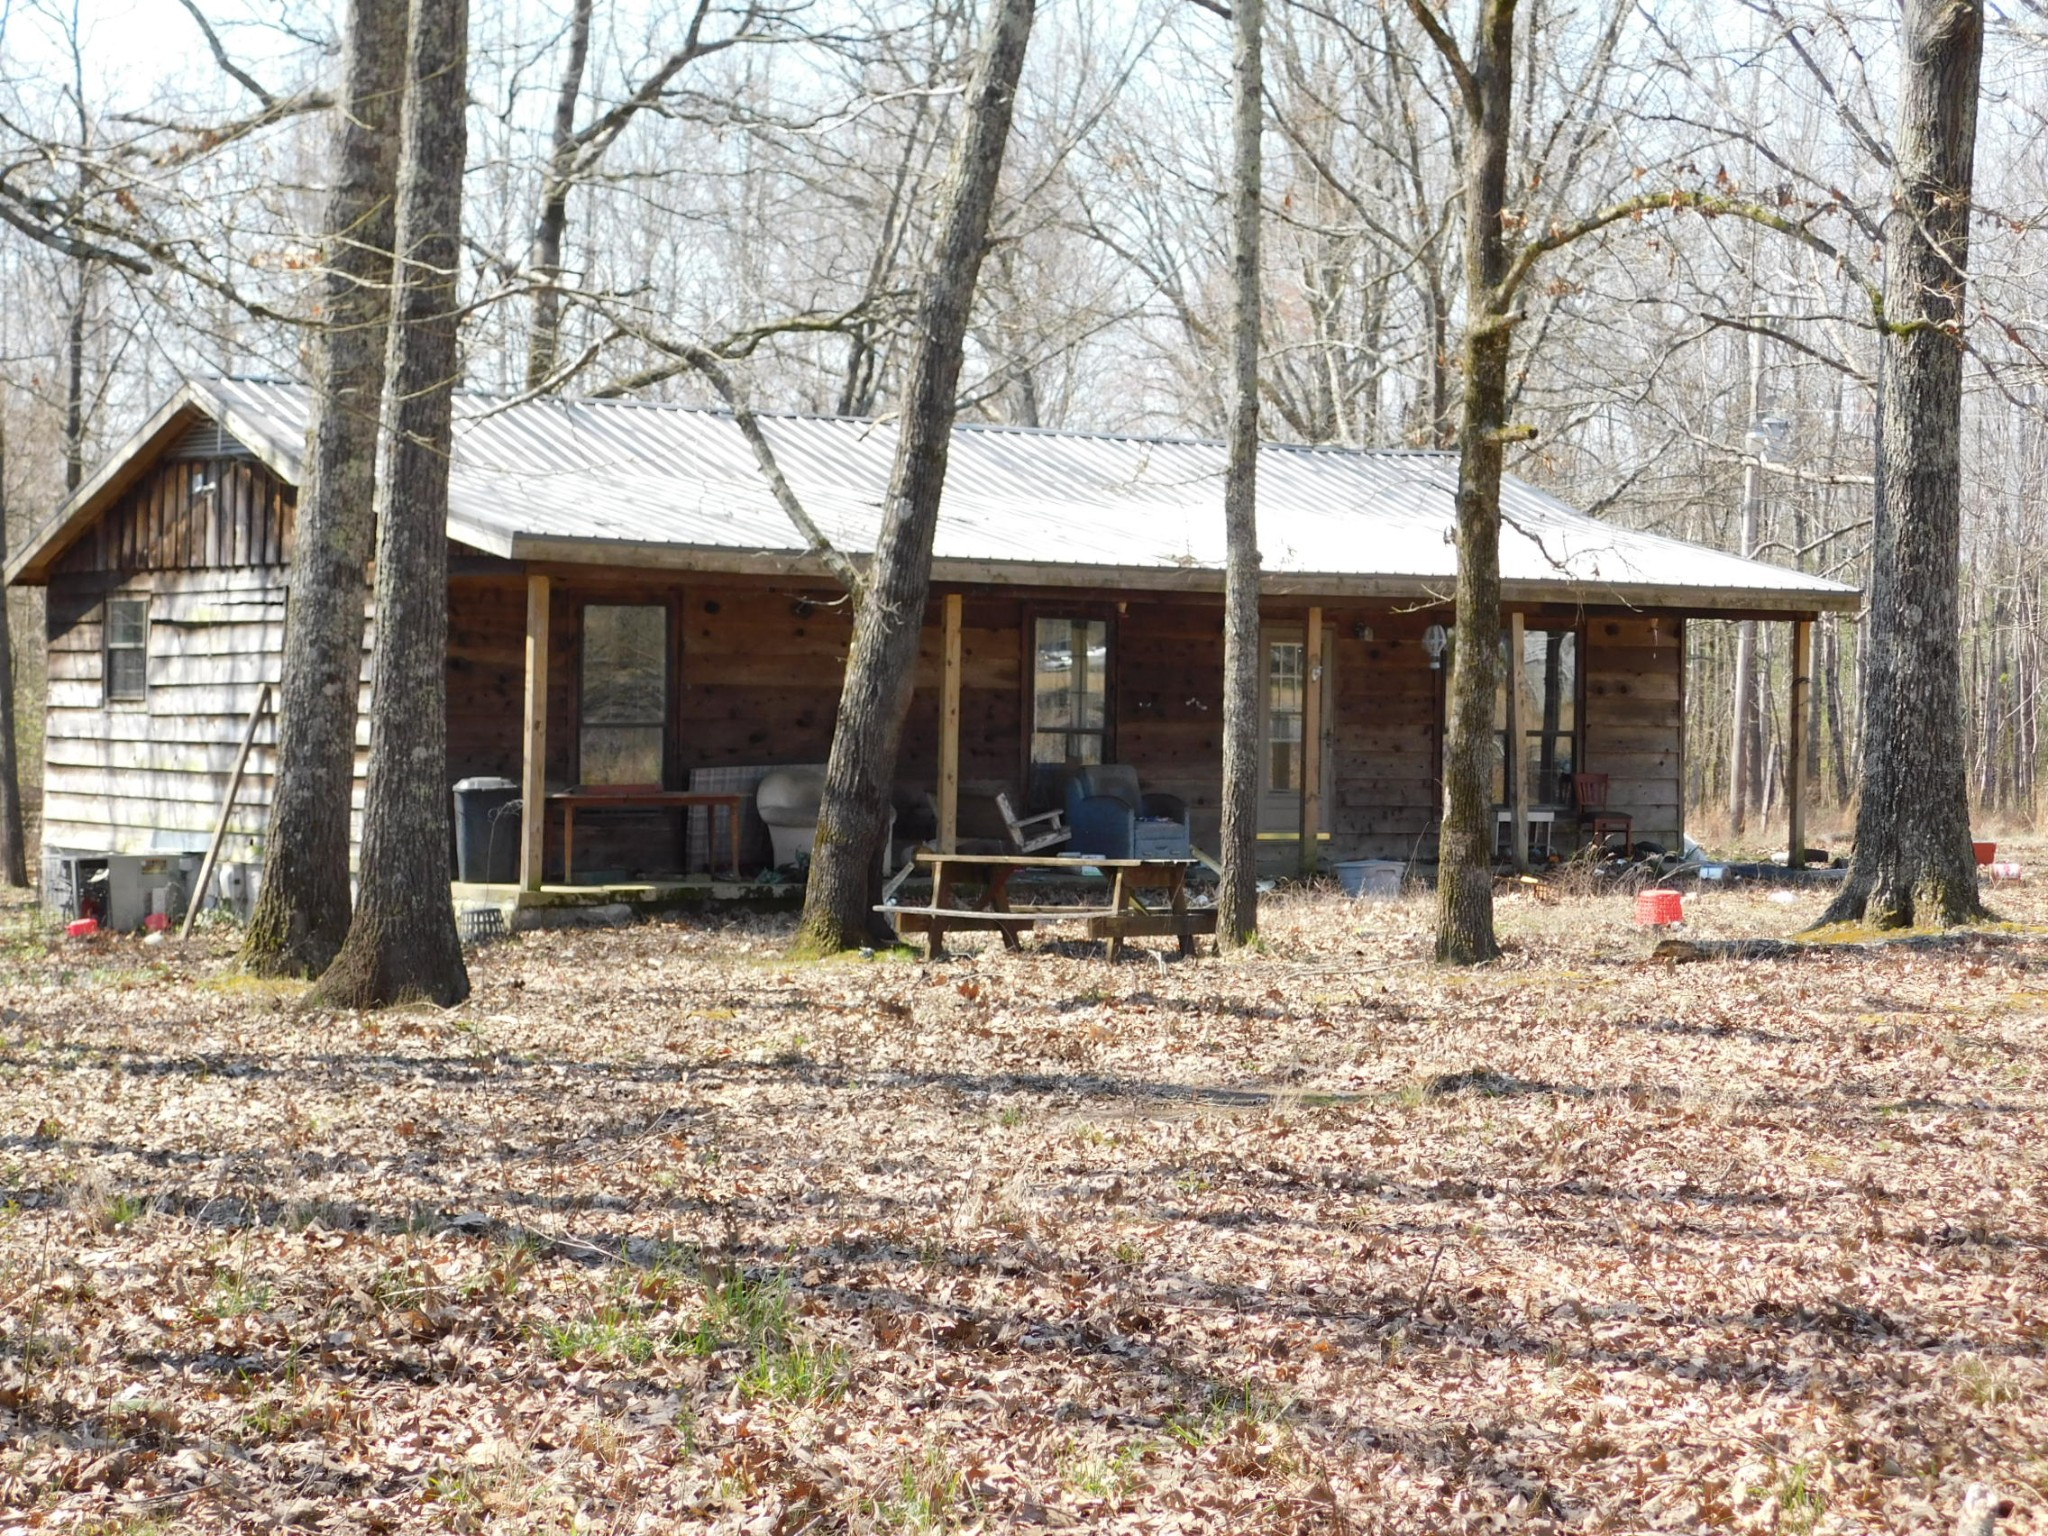 0 Hubert Manul Property Photo - Michie, TN real estate listing